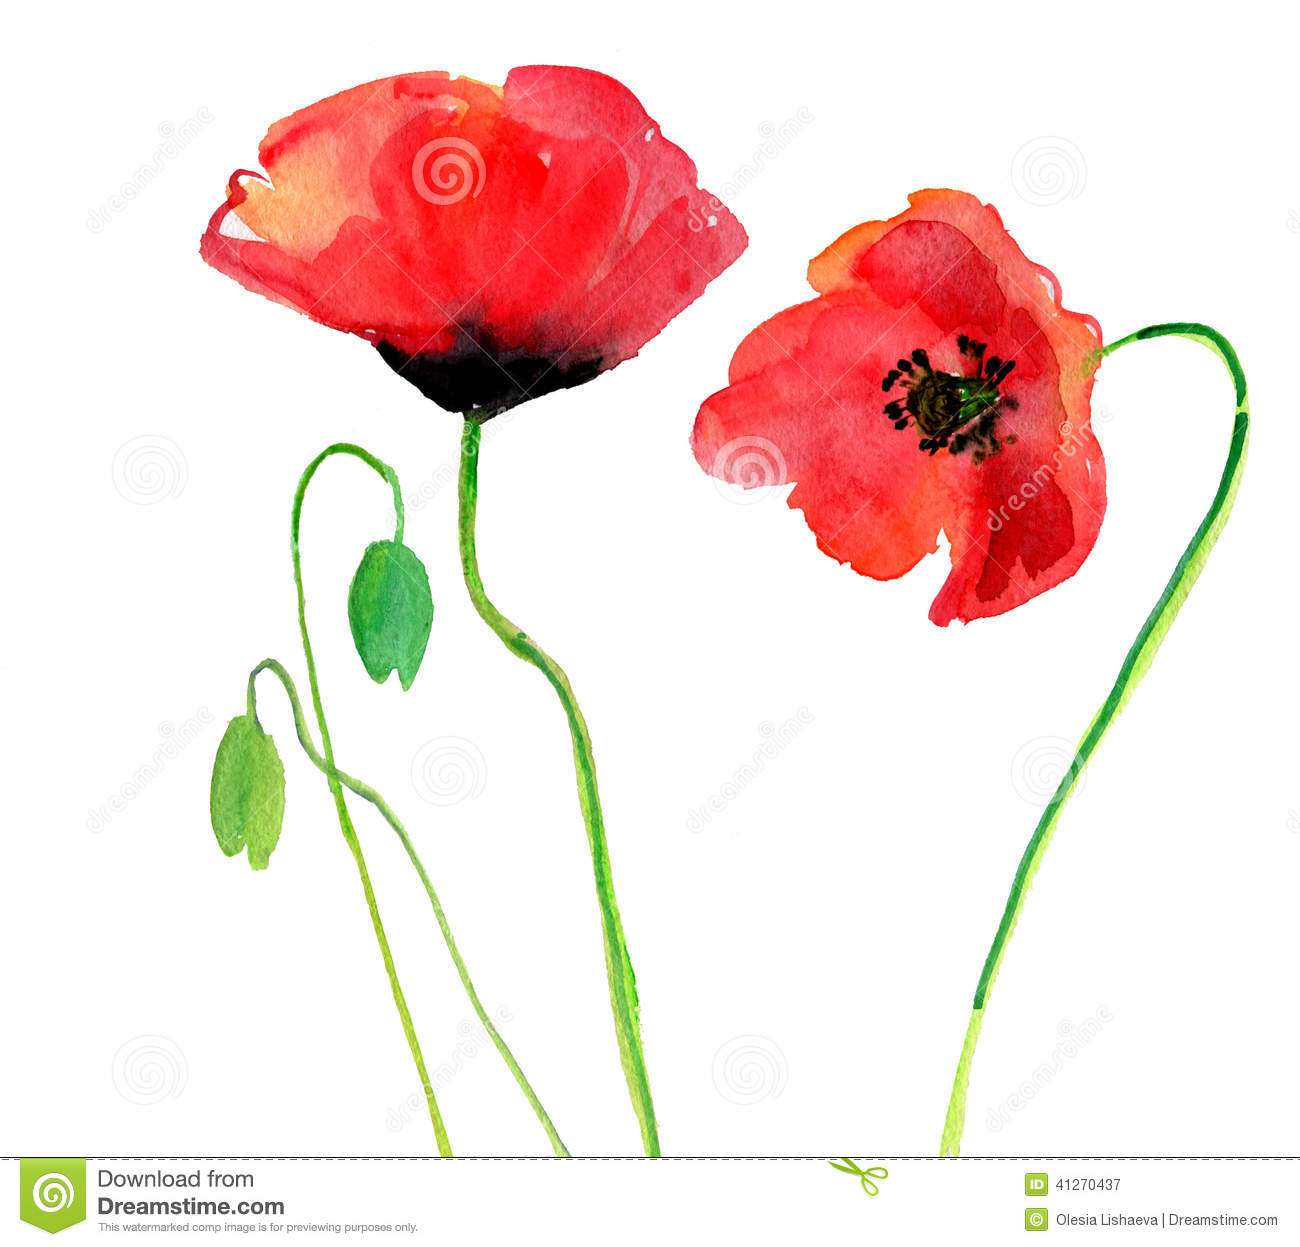 Poppy on a white background stock illustration illustration of download poppy on a white background stock illustration illustration of decorative abstract 41270437 mightylinksfo